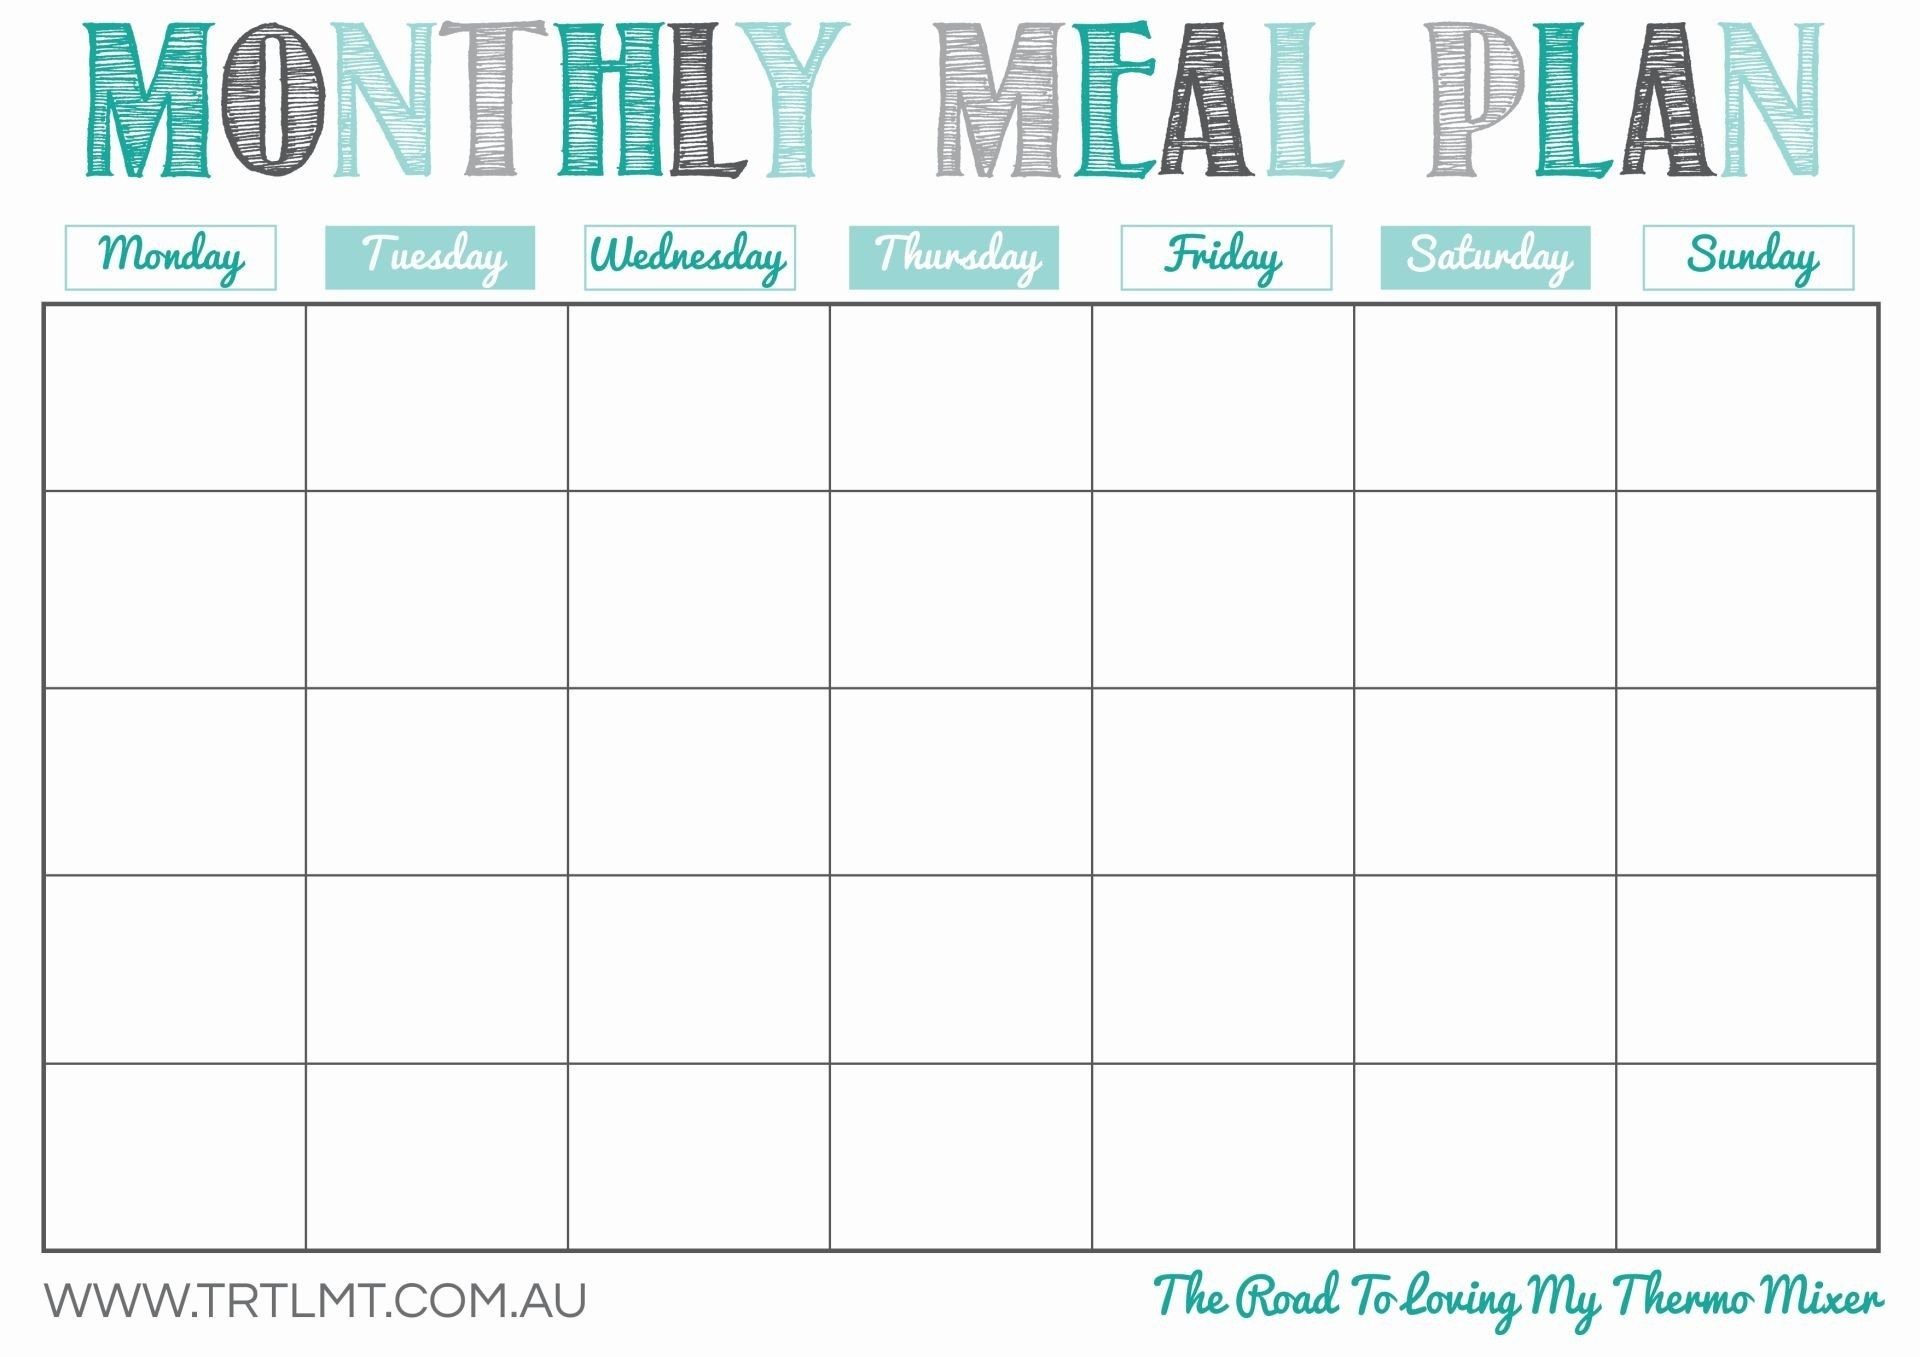 Monthly Meal Plan Template Printable Undated So You Can